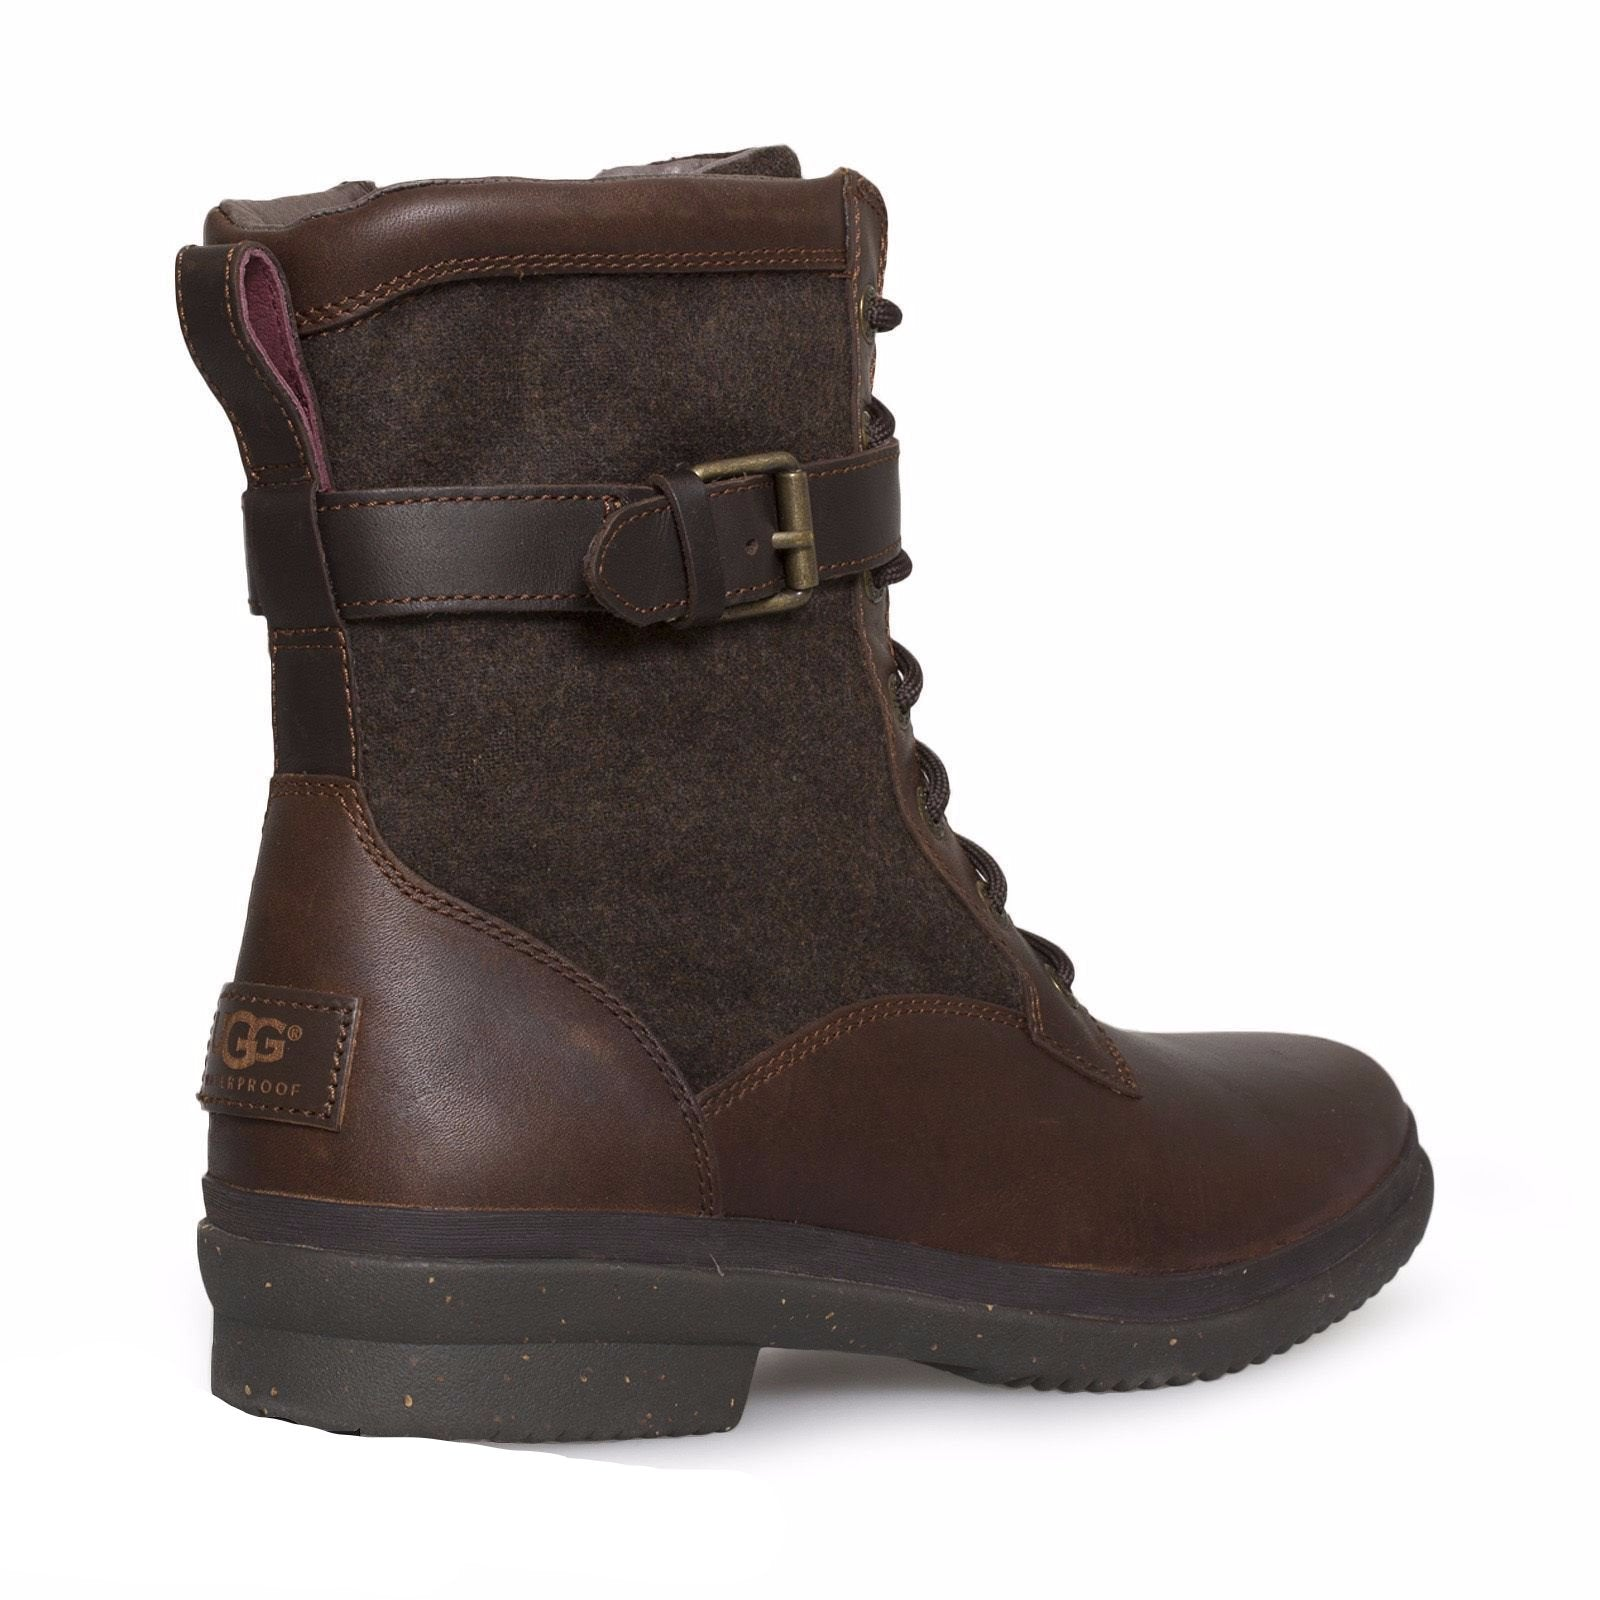 76ce186134c UGG Kesey Chestnut Boots